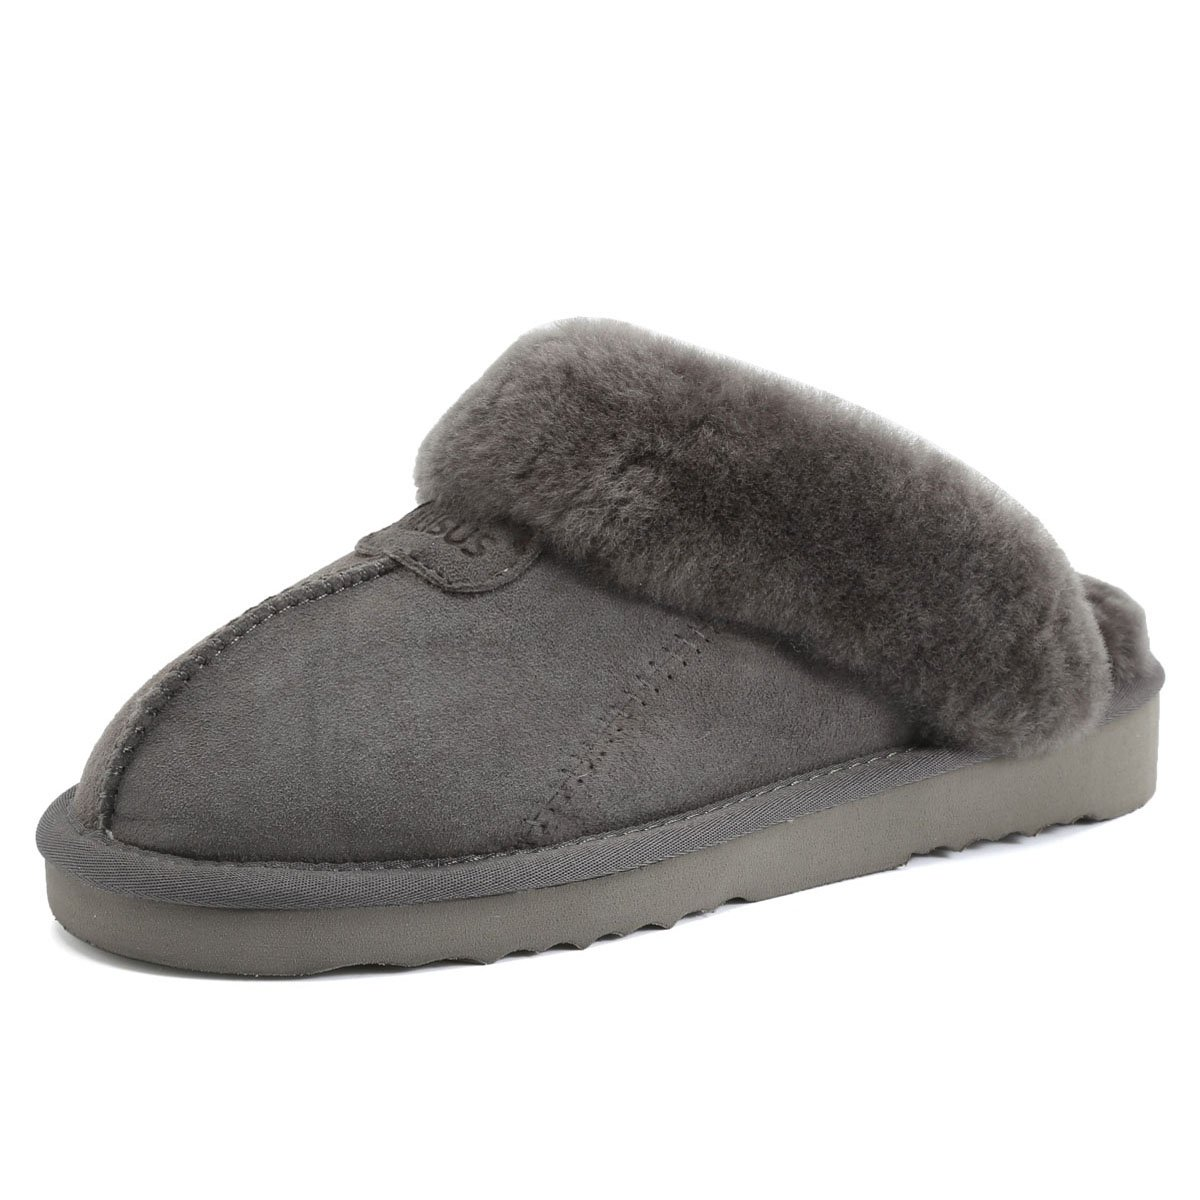 MEISUS Women's Comfort Ultra Soft Fluffy Slippers Wool Plush Fleece Lined House Shoes Indoor, Outdoor Anti-Skid Sole,USMMT03-Grey-40